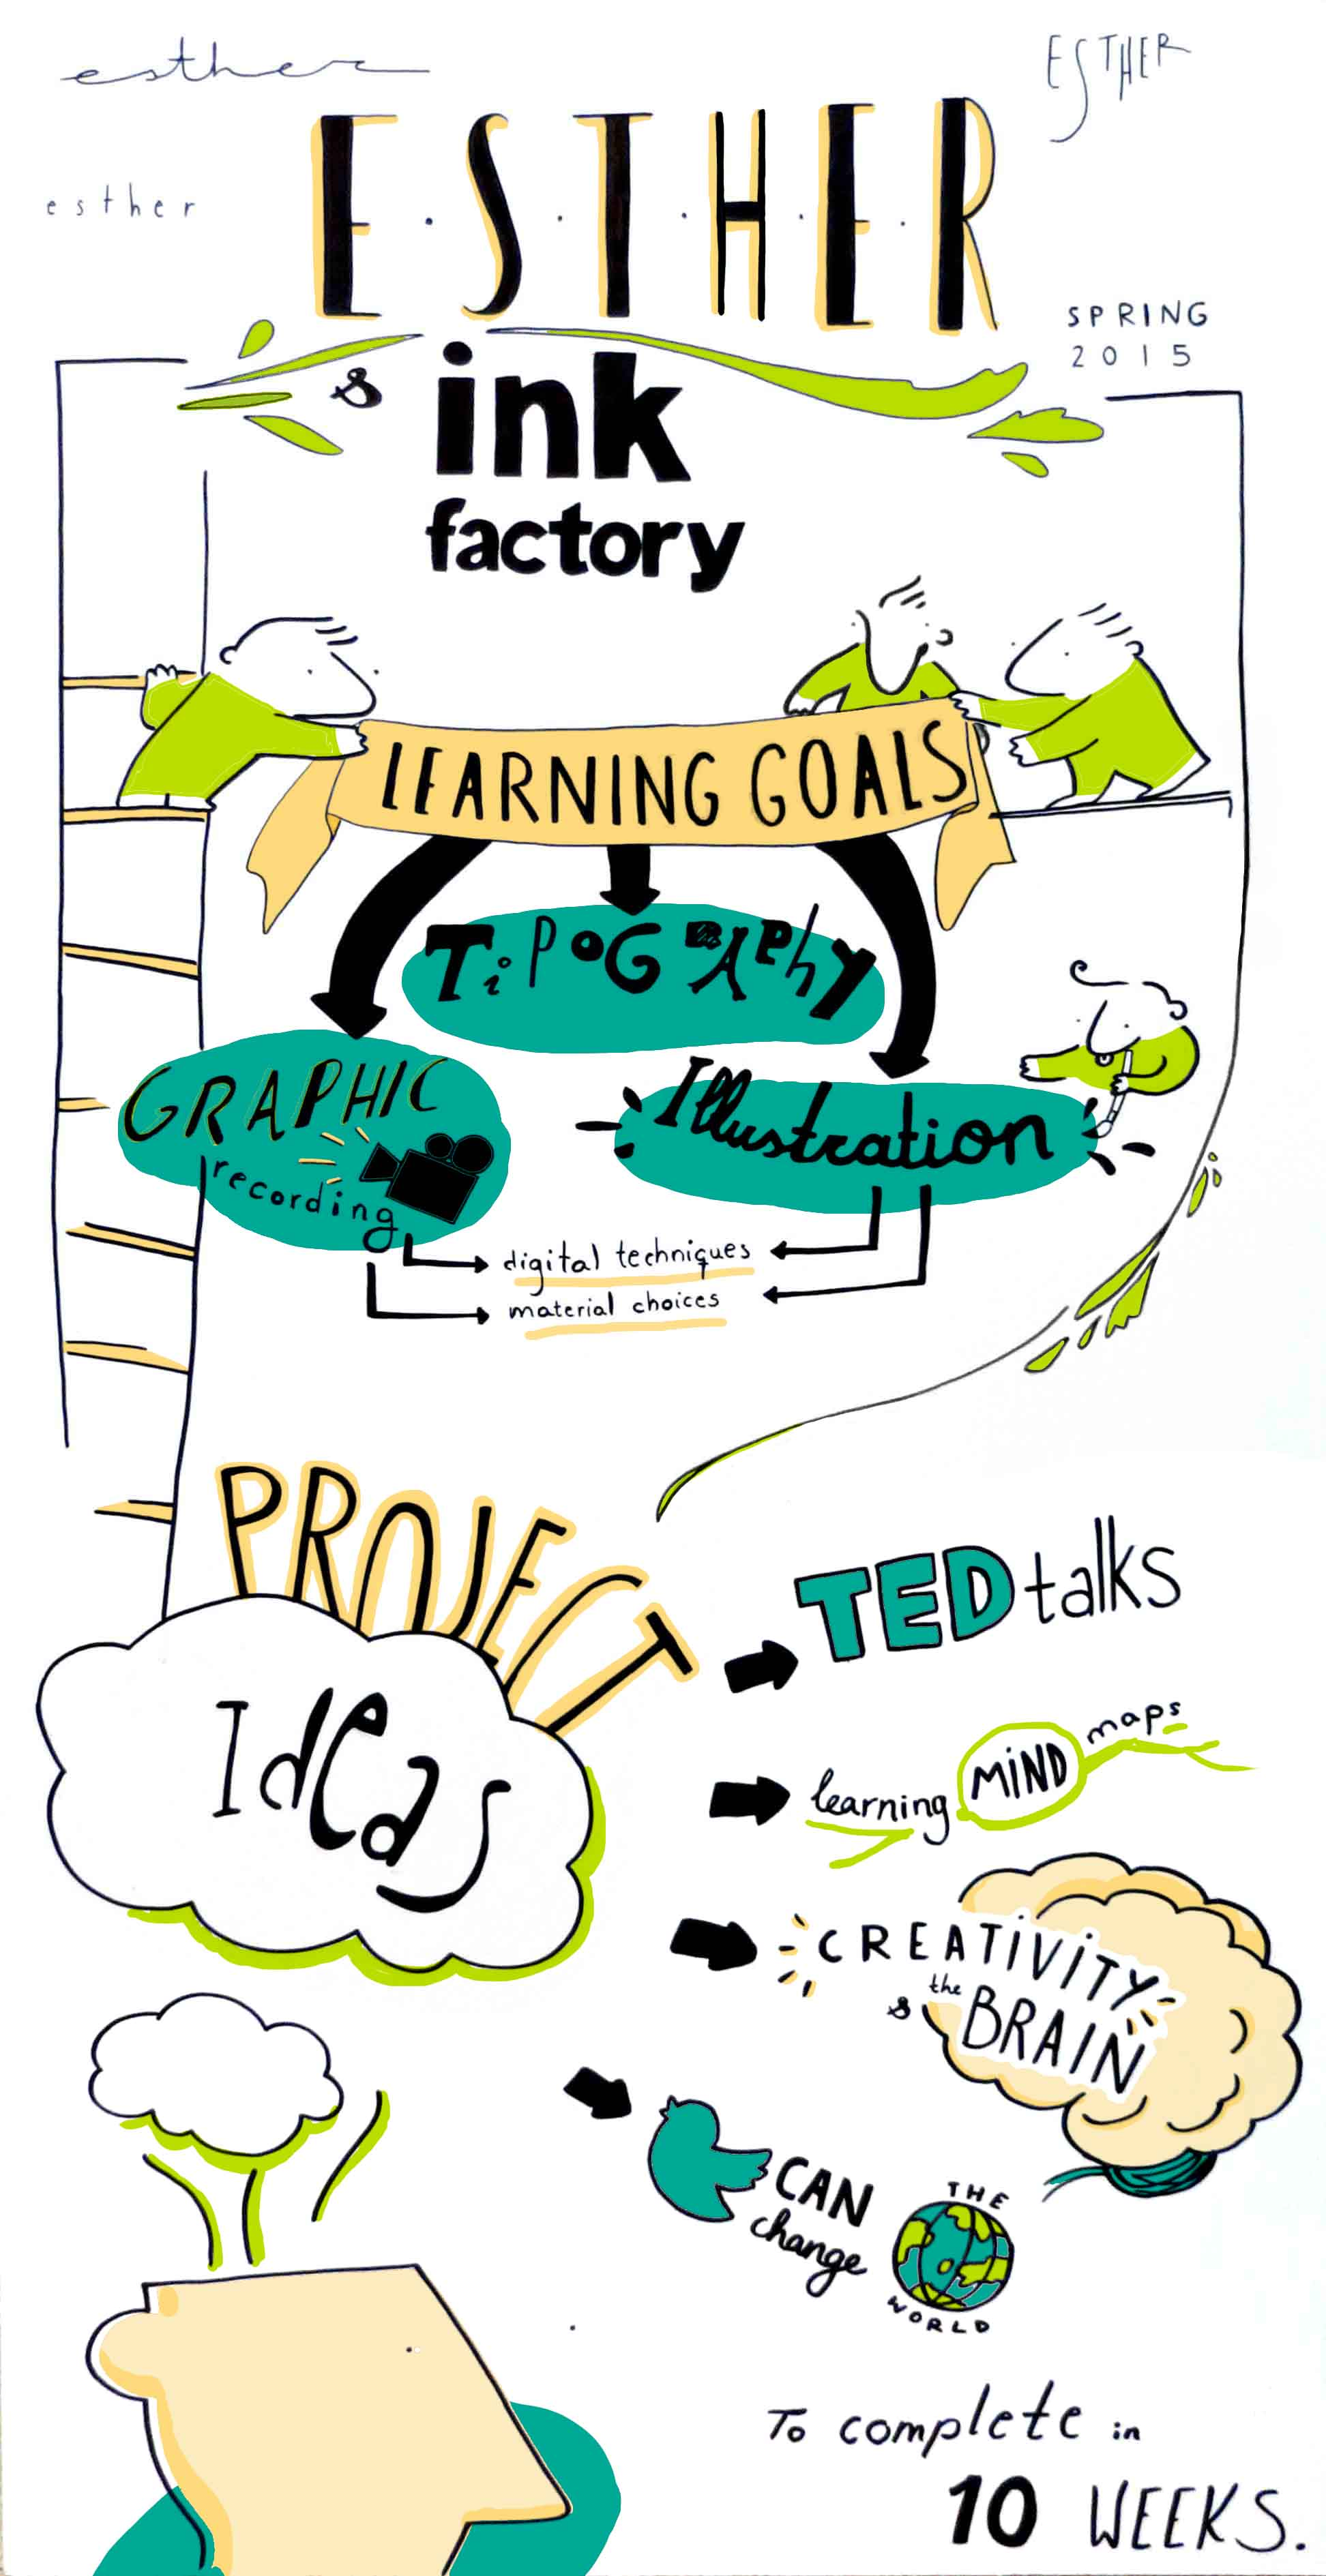 Syllabuscolorphotoshop.jpg